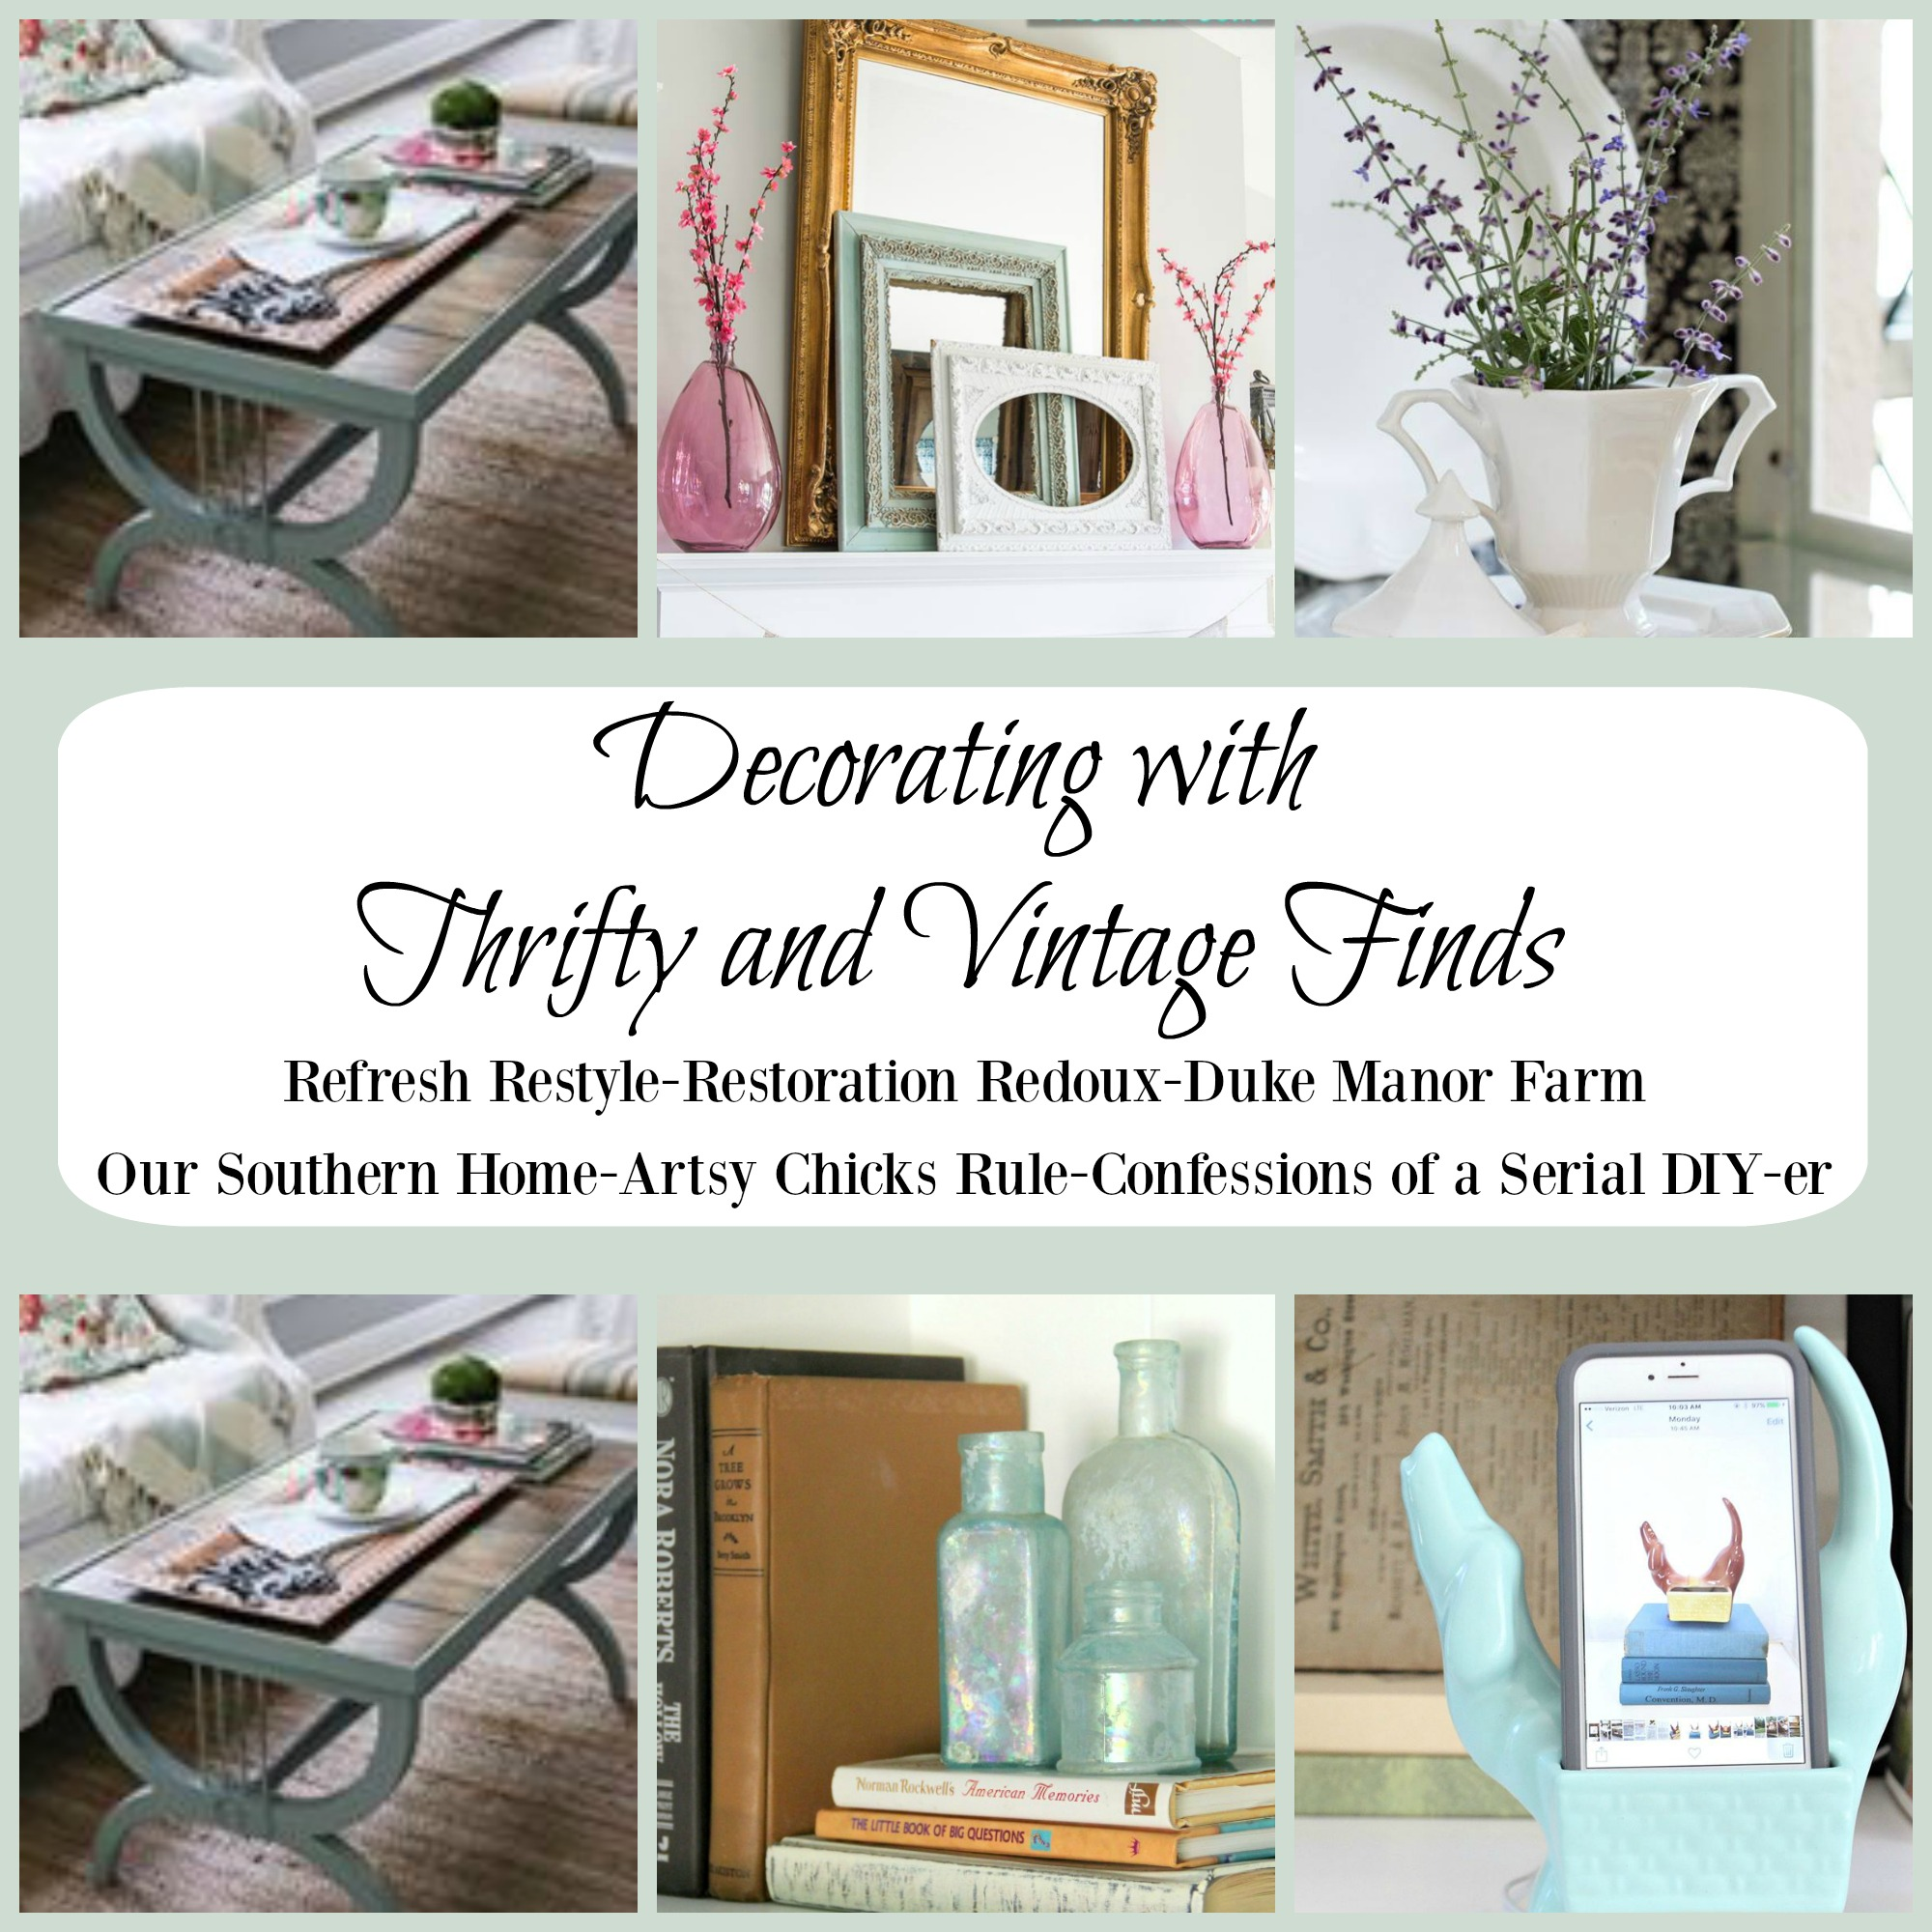 Decorating with Thrifty and Vintage Finds - Daily Dose of Style